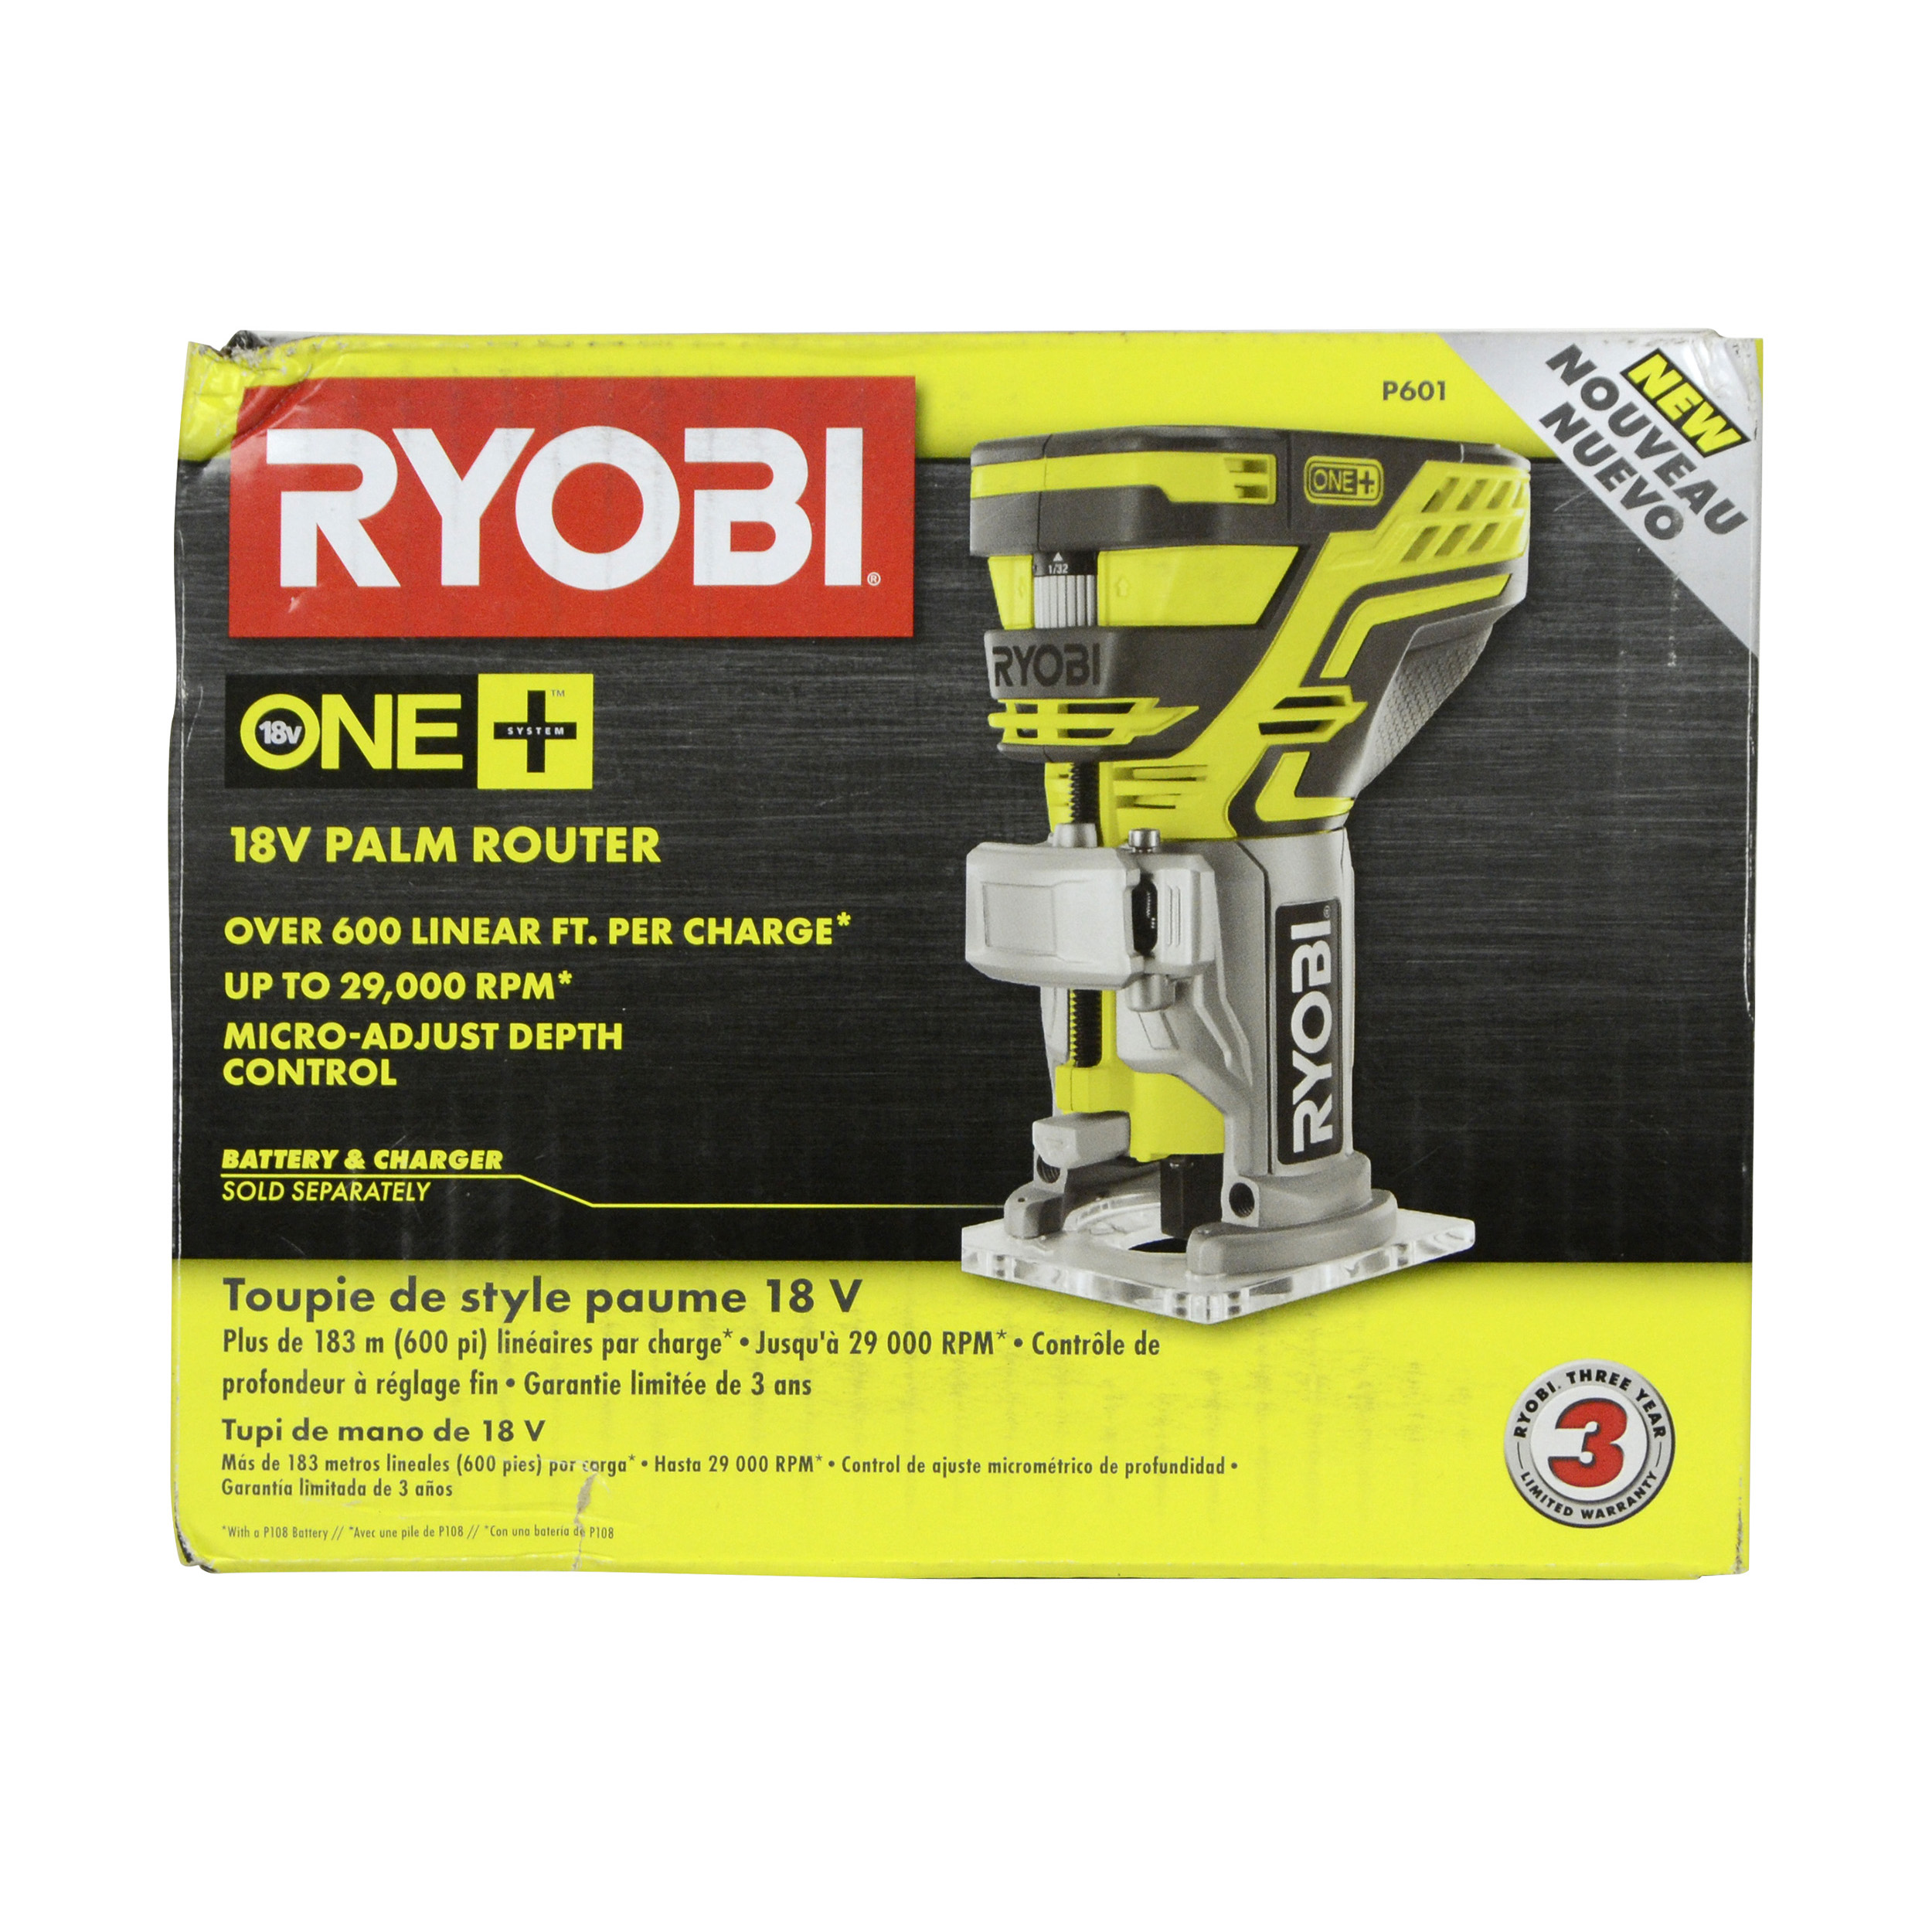 Ryobi P601 ONE+ 18V Cordless Fixed Base Palm Router, Tool Only by